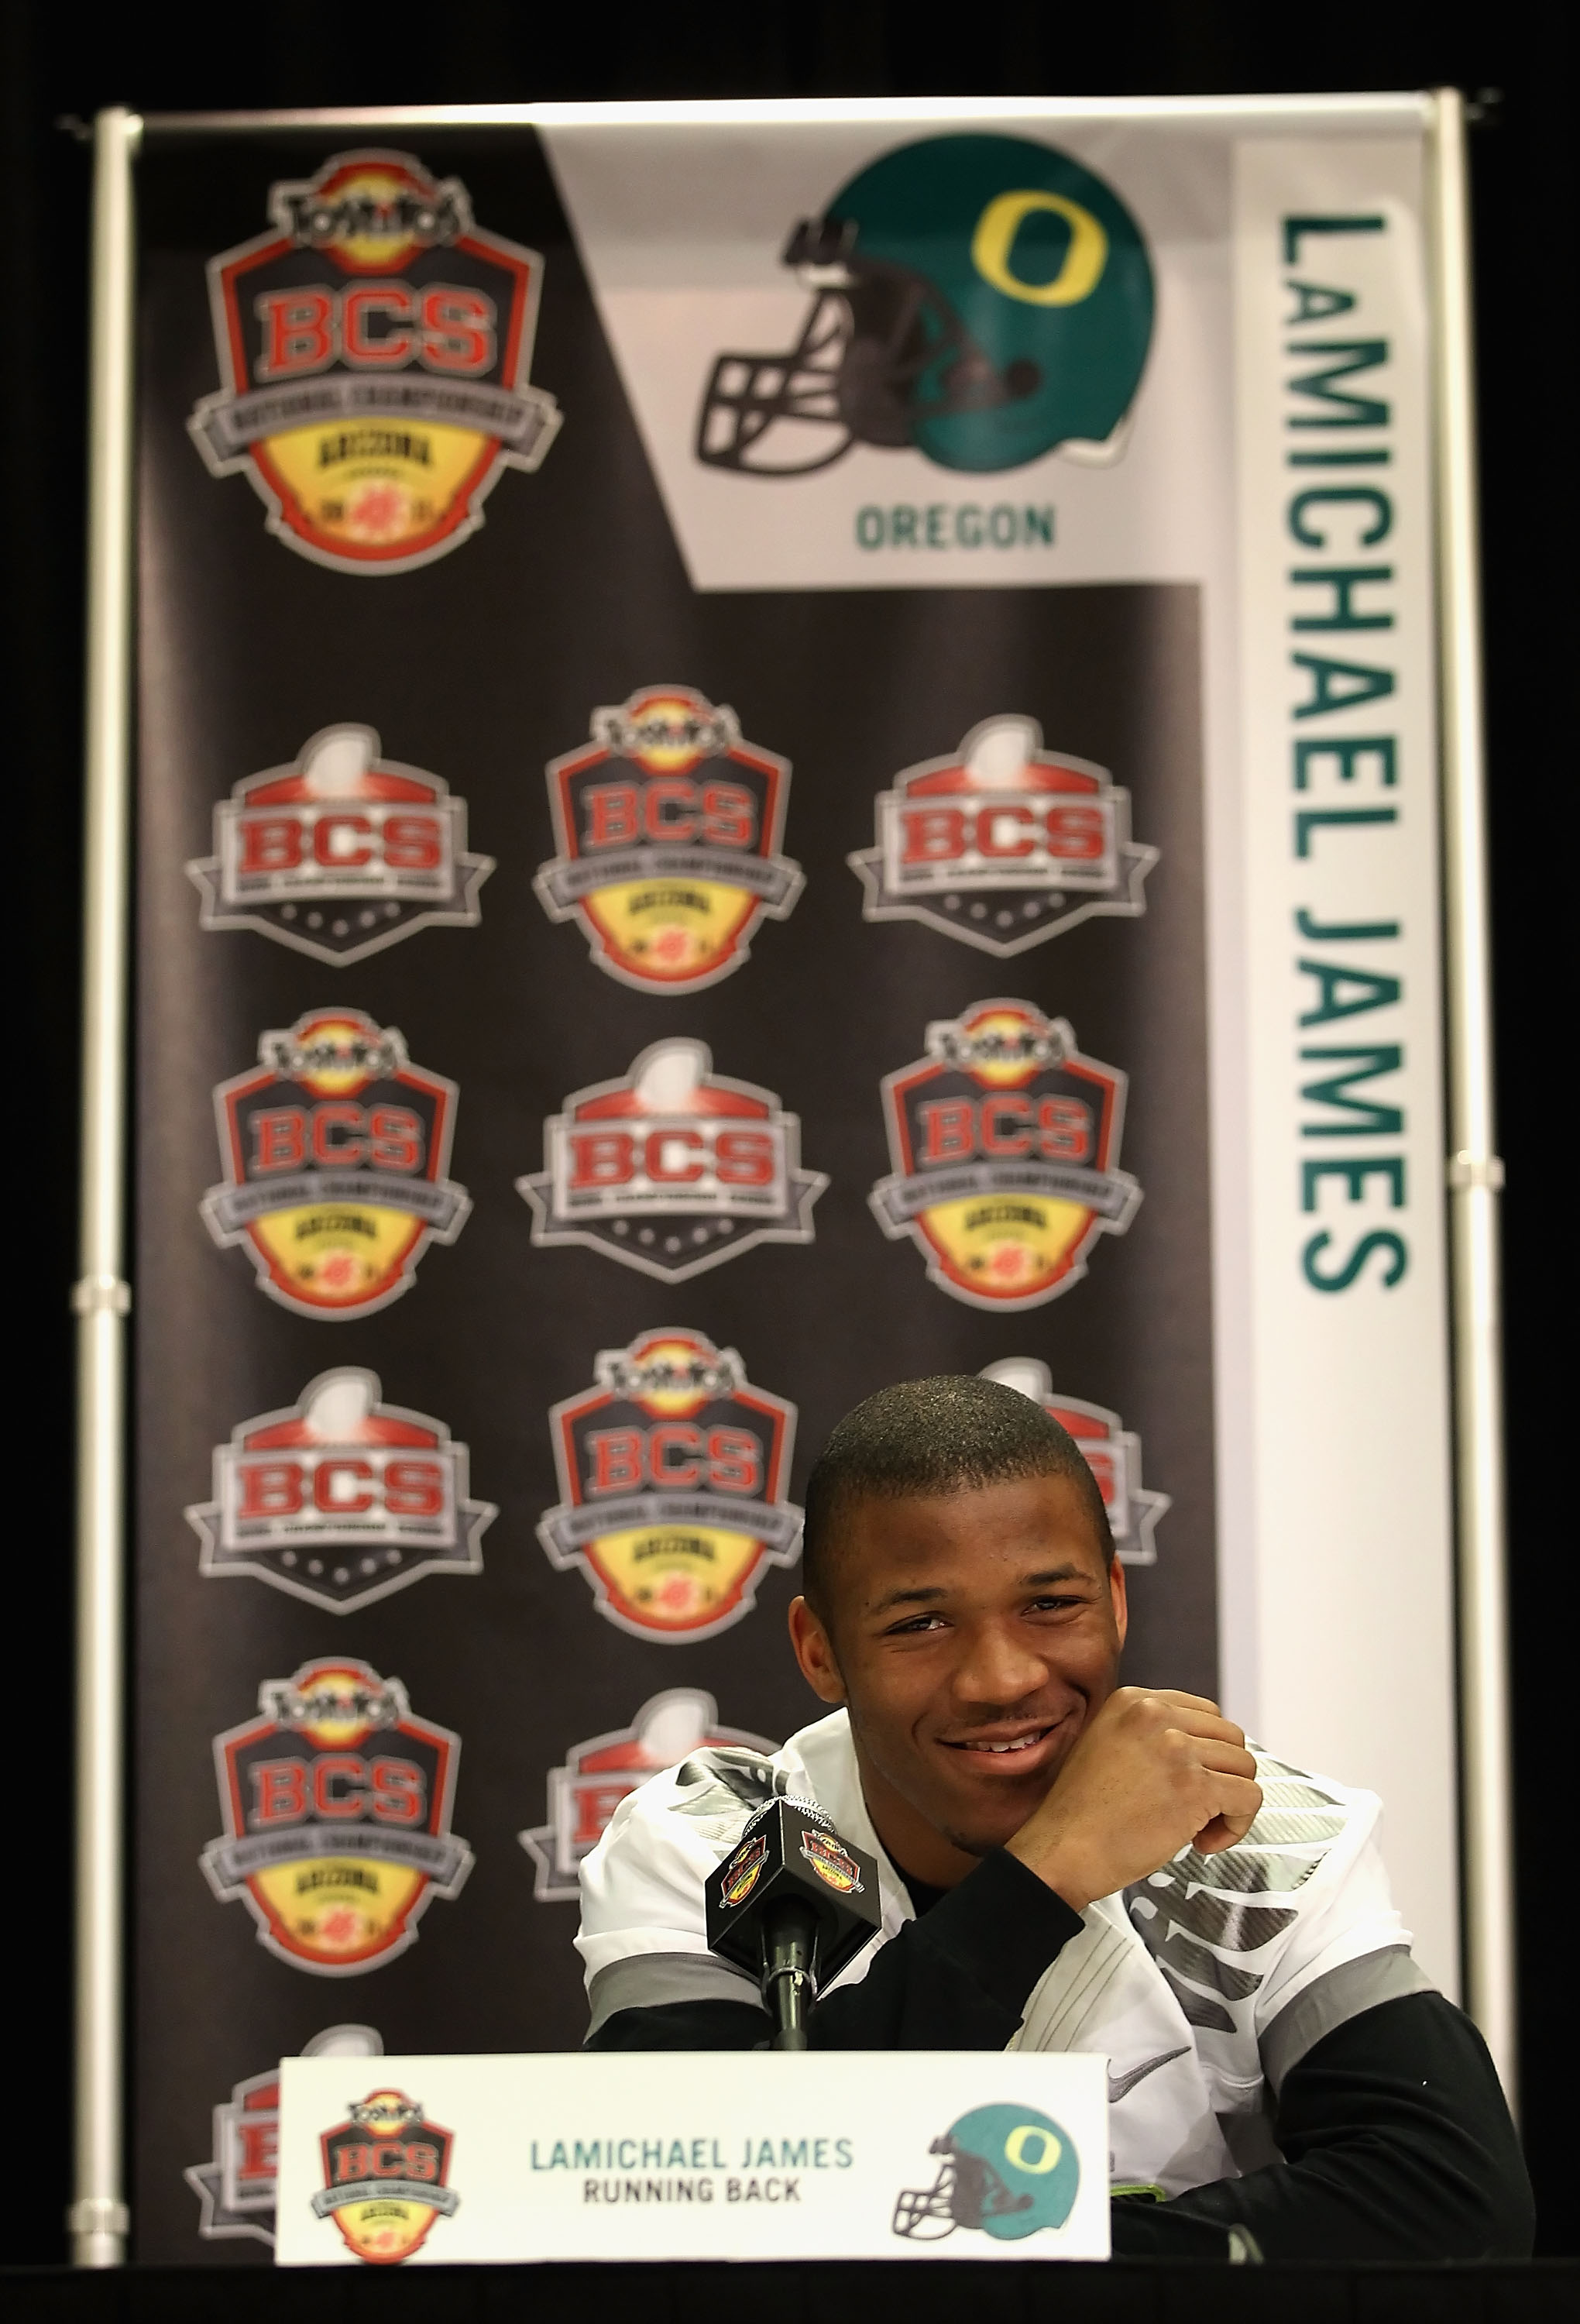 SCOTTSDALE, AZ - JANUARY 07:  Runningback LaMichael James #21 of the Oregon Ducks speaks during Media Day for the Tostitos BCS National Championship Game at the JW Marriott Camelback Inn on January 7, 2011 in Scottsdale, Arizona.  (Photo by Christian Pete